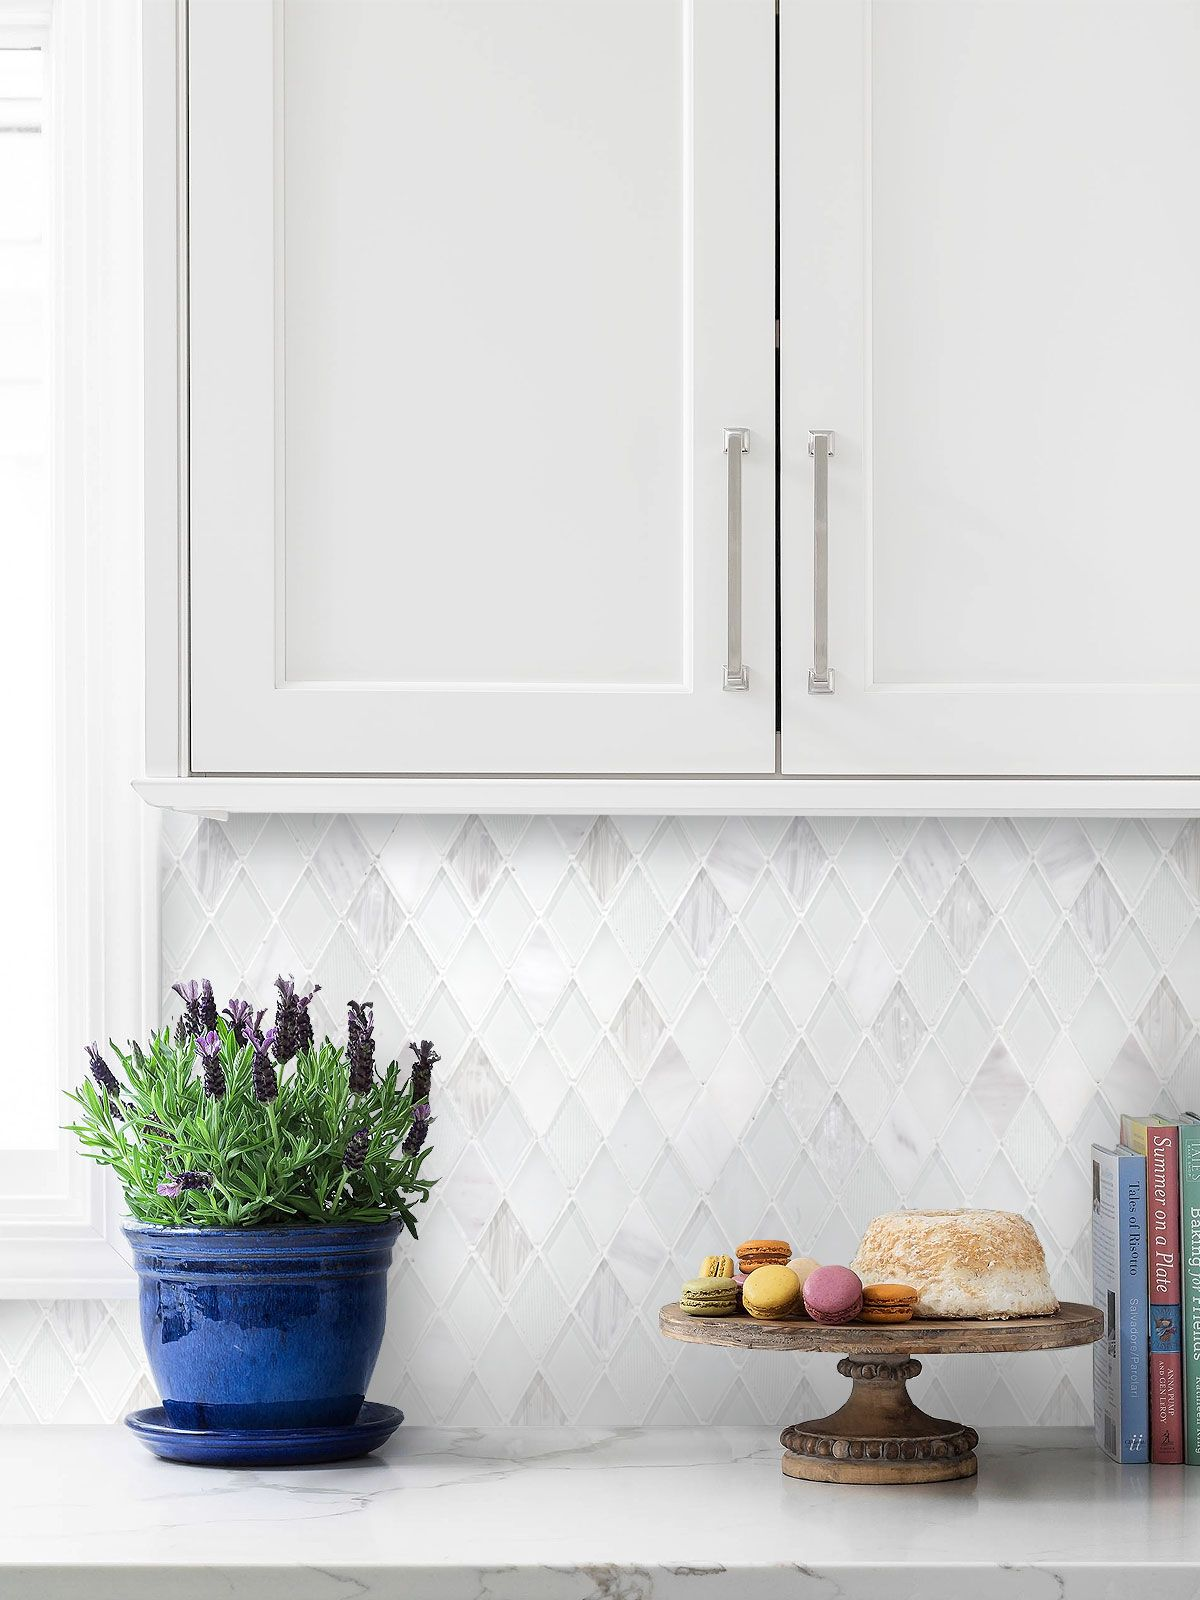 - Elegant White Rhomboid Backsplash Tile Backsplash.com White